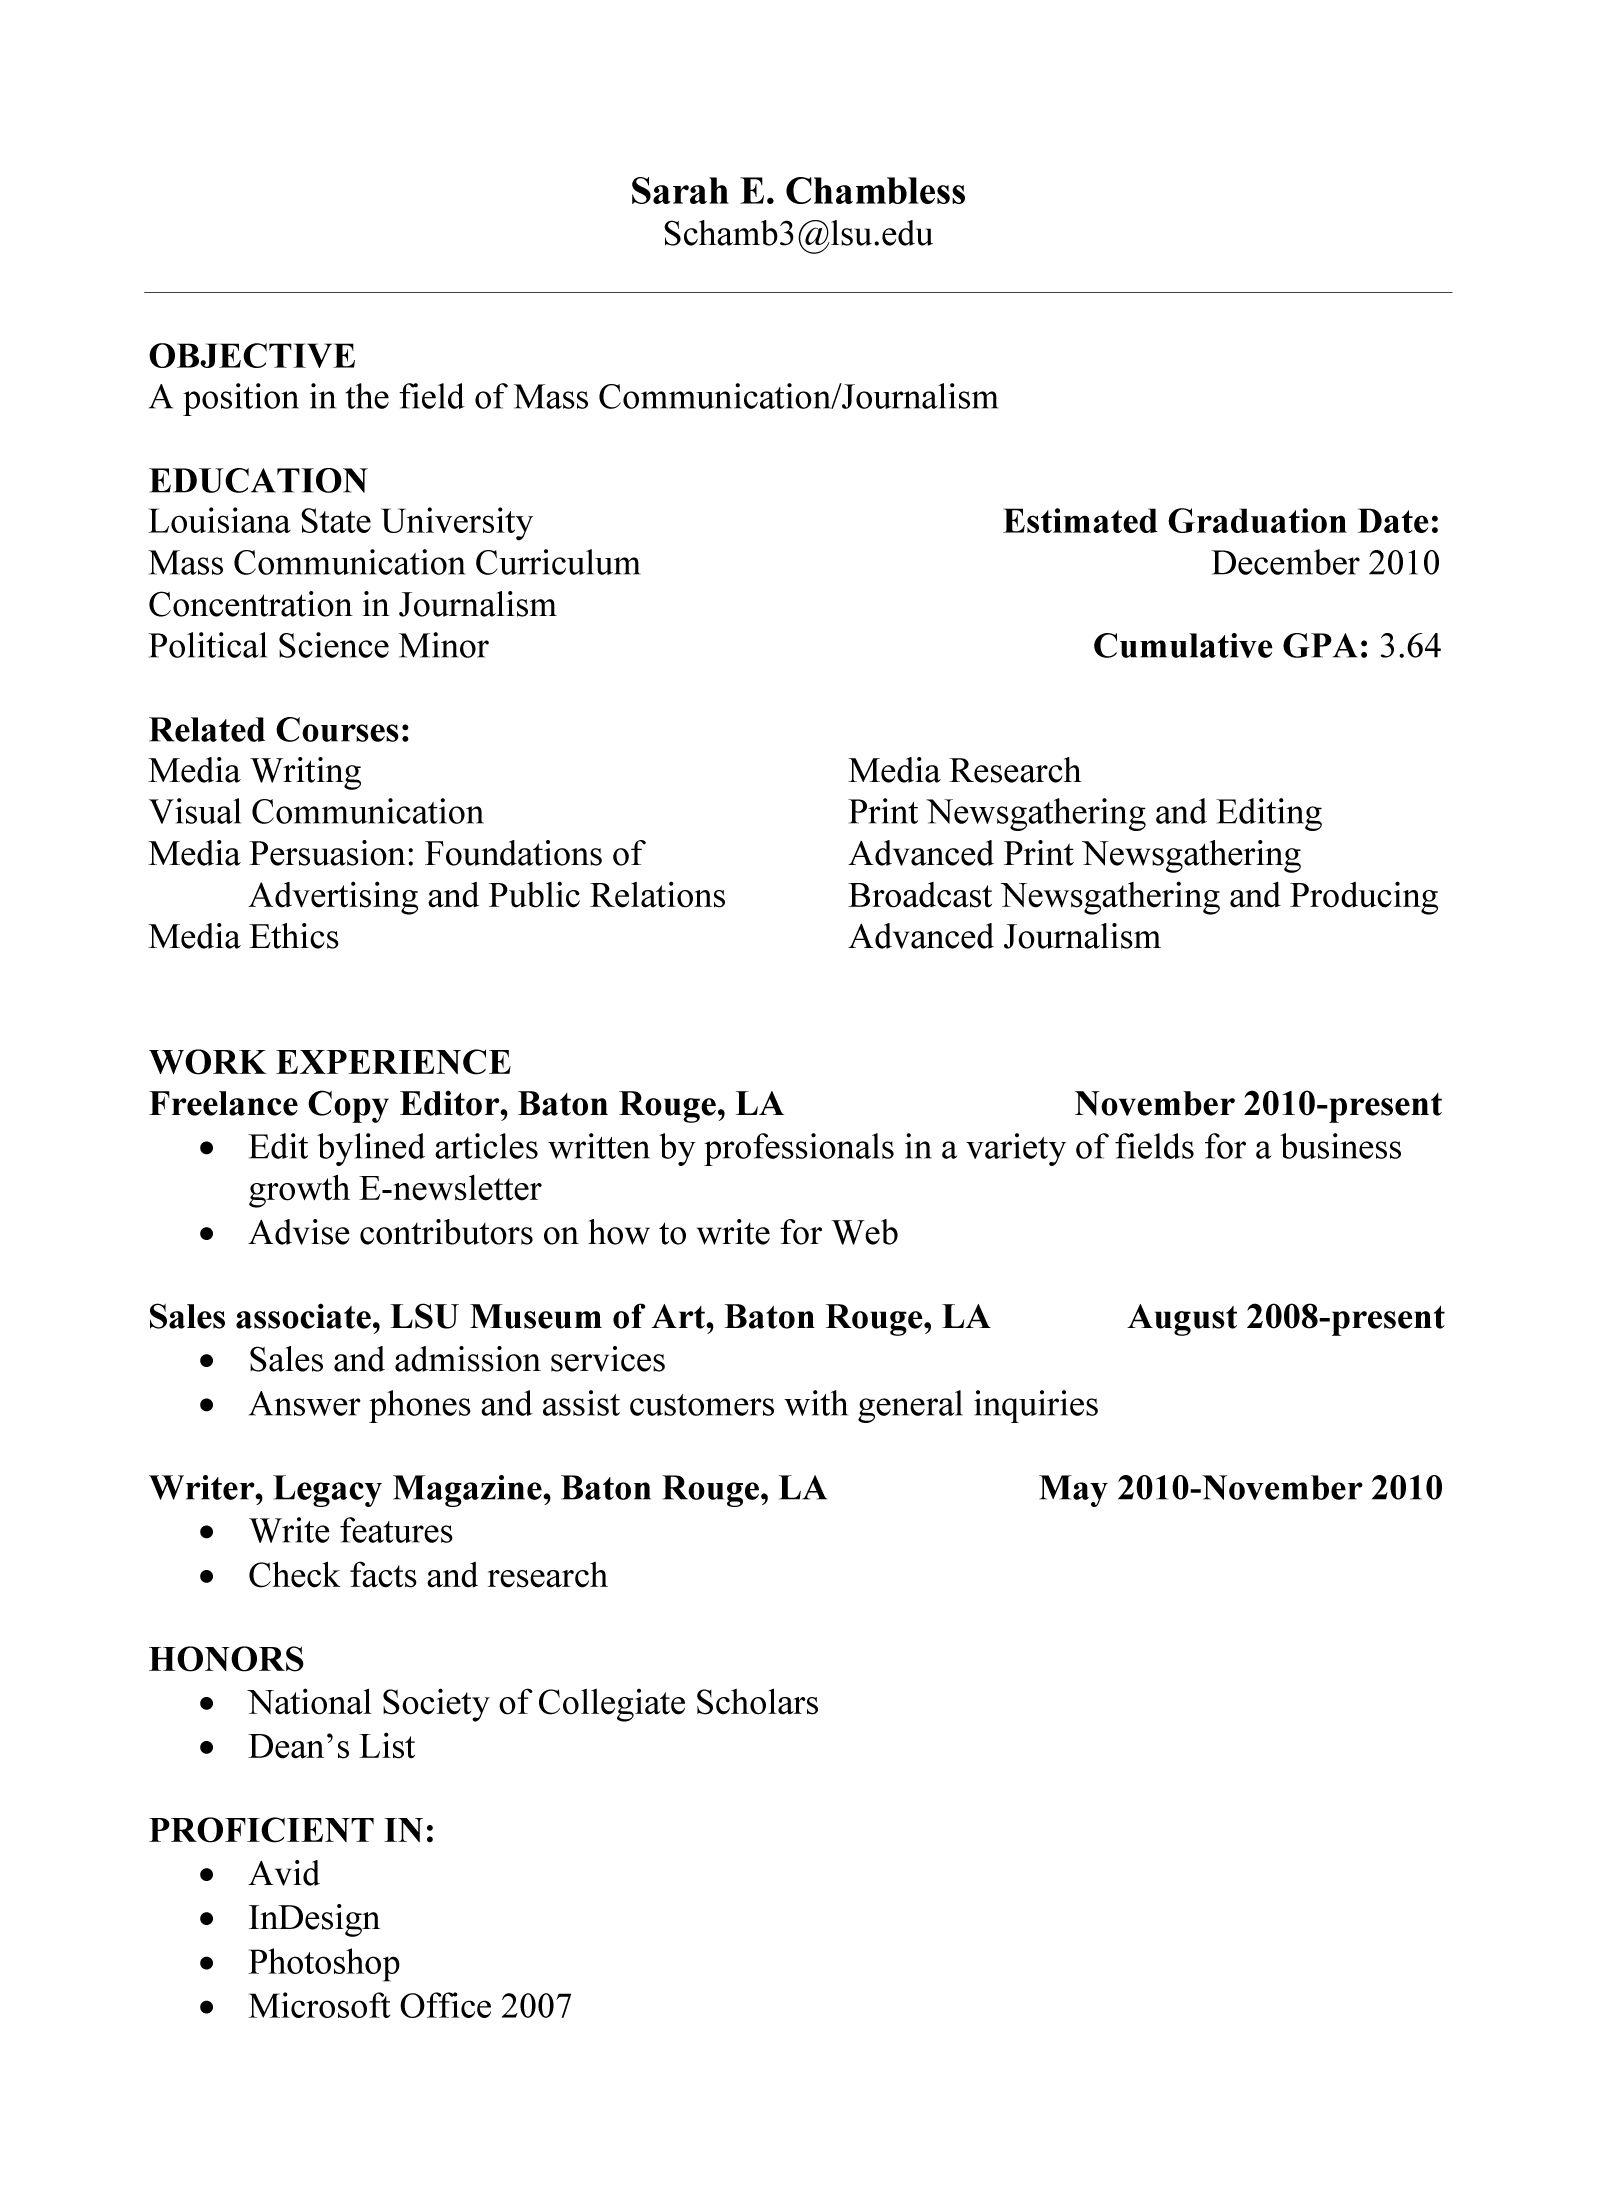 Current College Student Resume Template Résumé Sarah Chambless 39 Blog